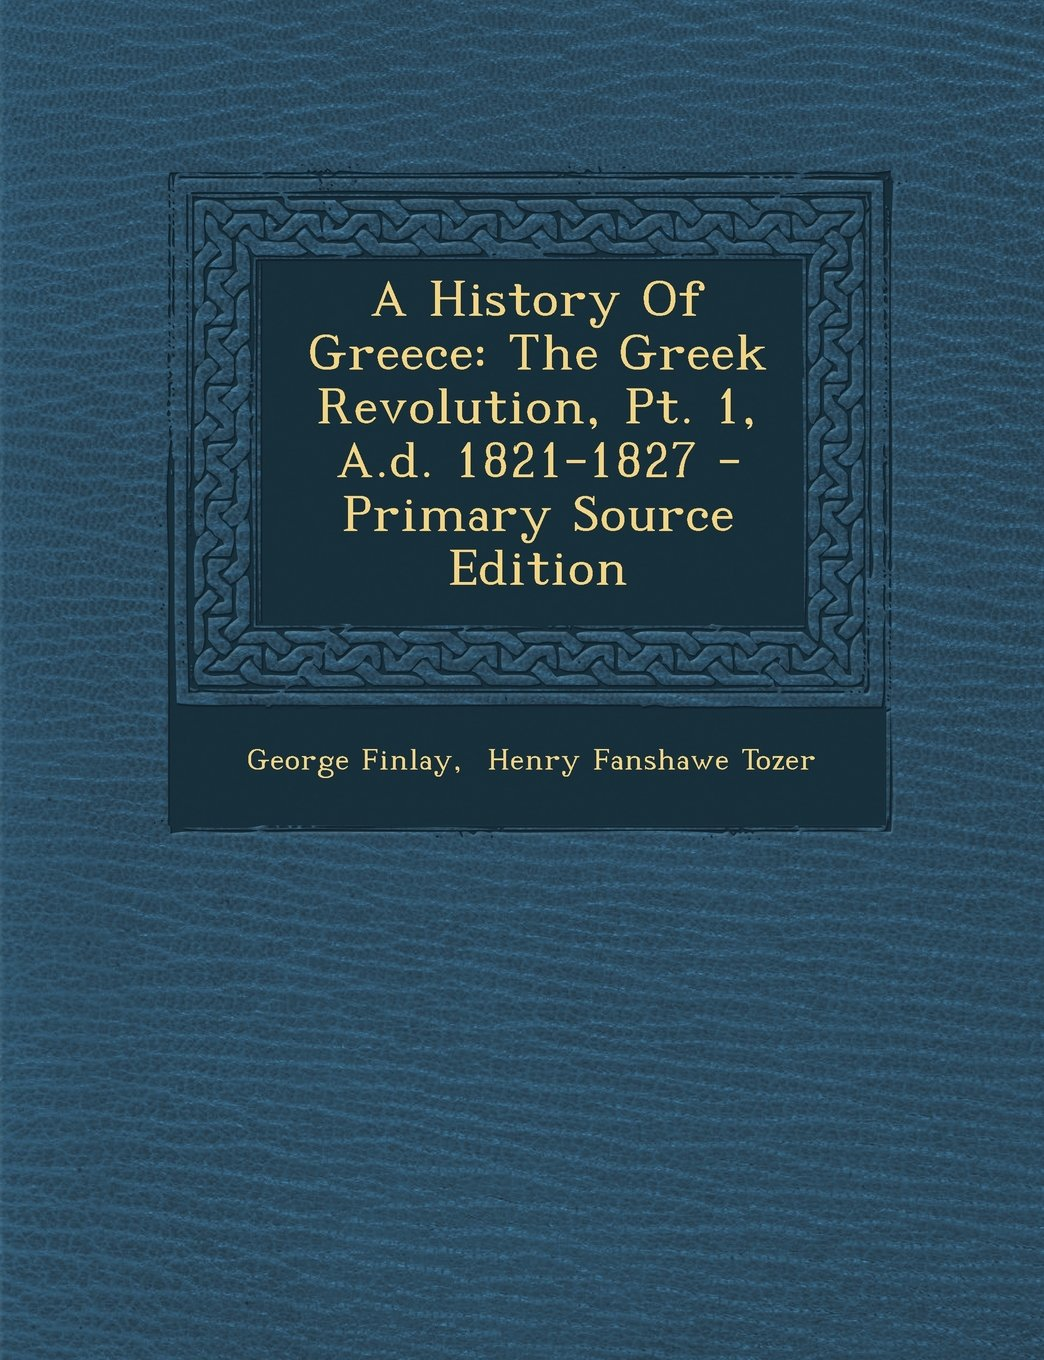 A History Of Greece: The Greek Revolution, Pt. 1, A.d. 1821-1827 - Primary Source Edition ebook